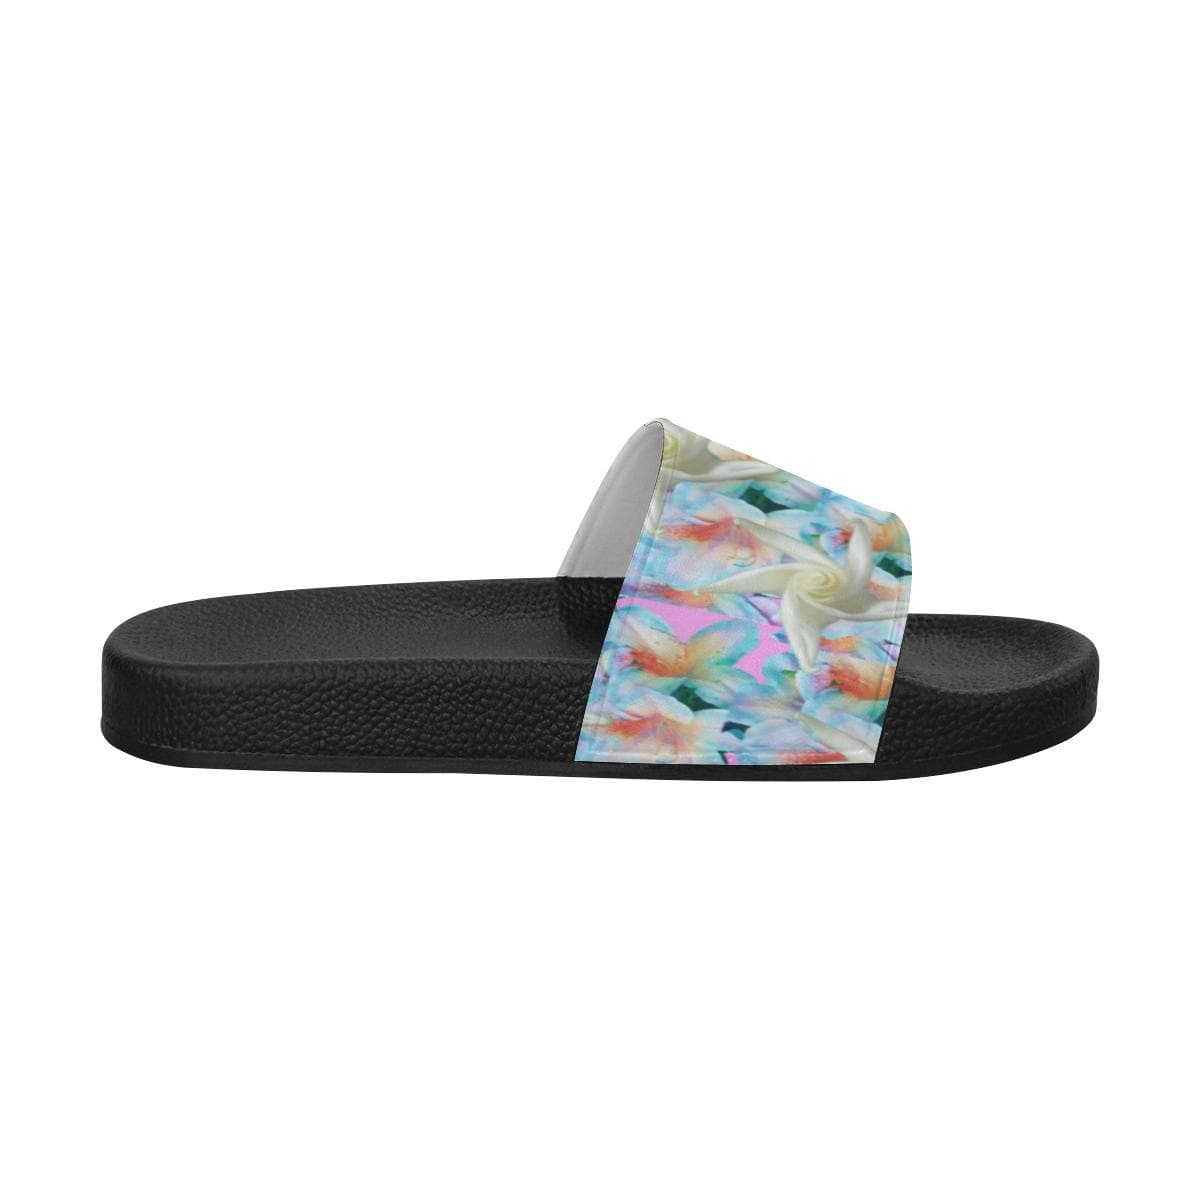 Midnight Floral Women's Slide Sandals, Flip Flops -tie - fly